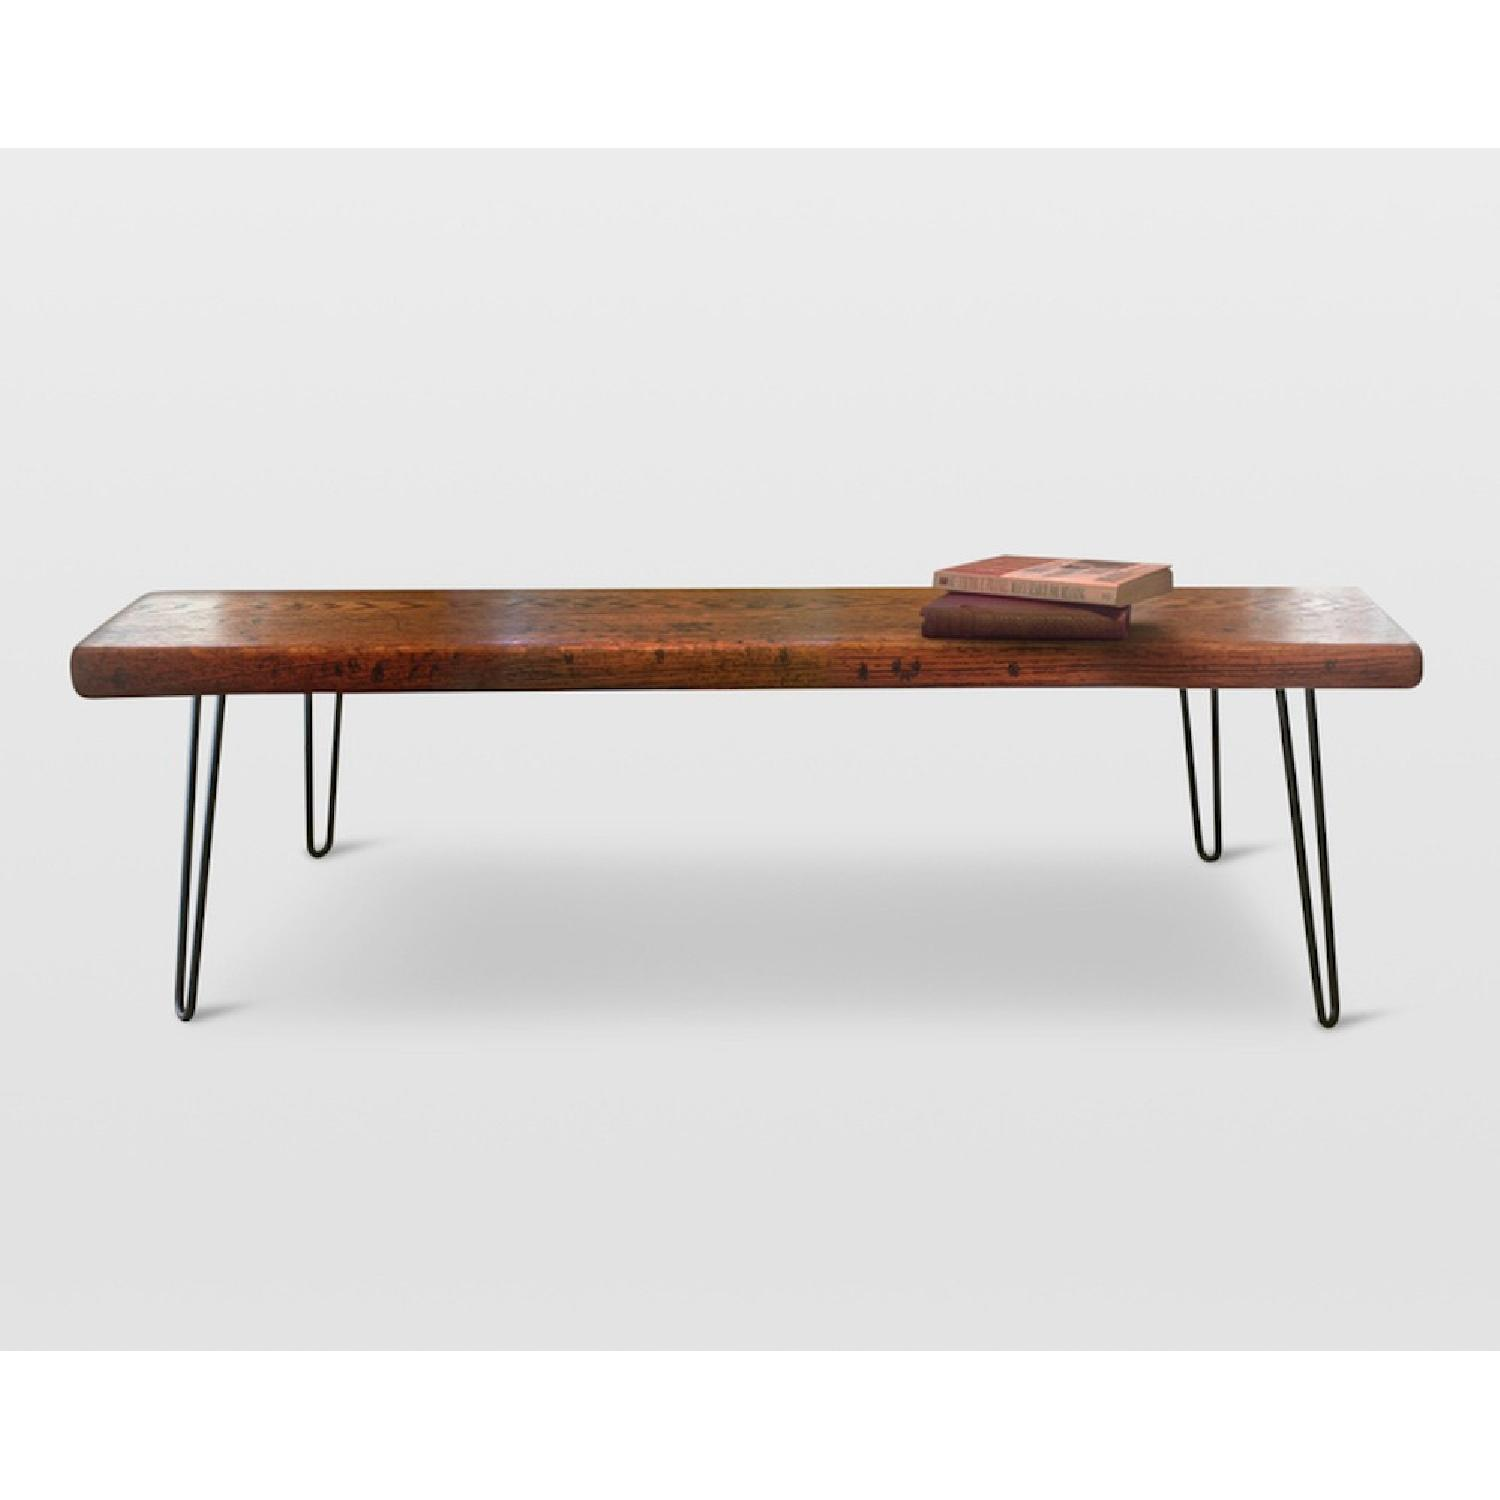 FurnitureNYC Manhattan Reclaimed Coffee Table w/ Hairpin Legs - image-7